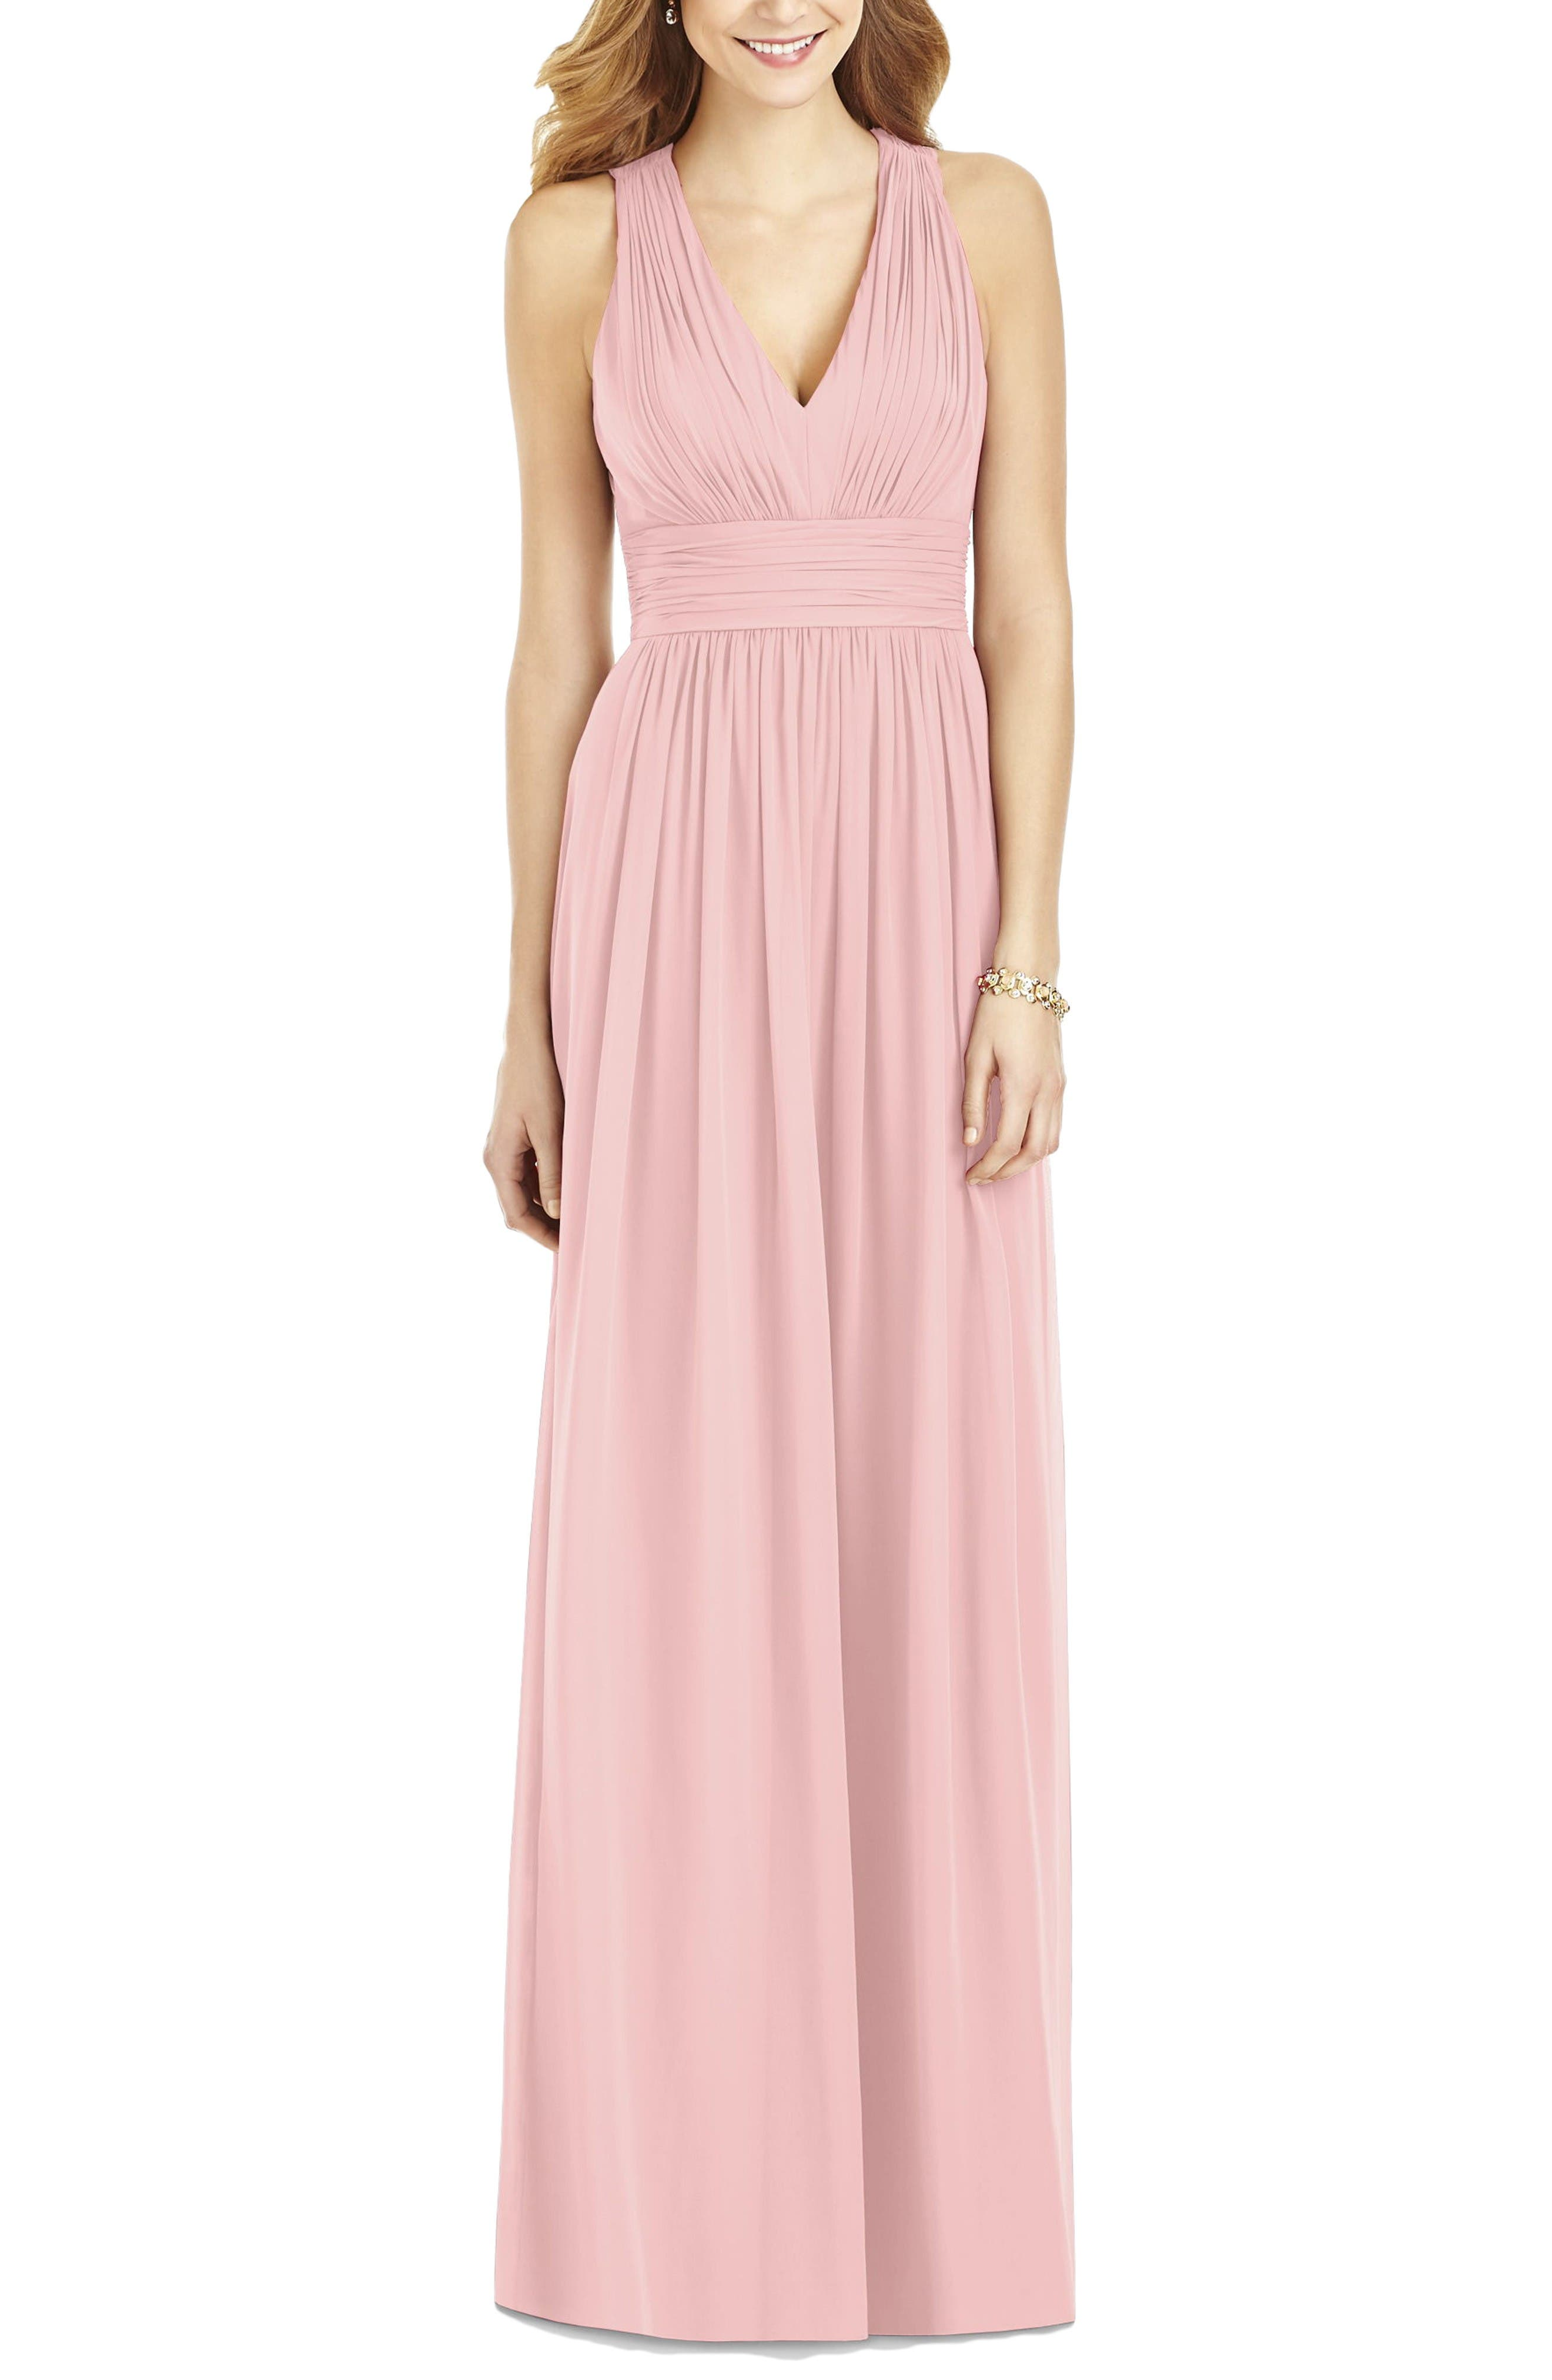 Crisscross Back Ruched Chiffon V-Neck Gown,                             Main thumbnail 1, color,                             Rose